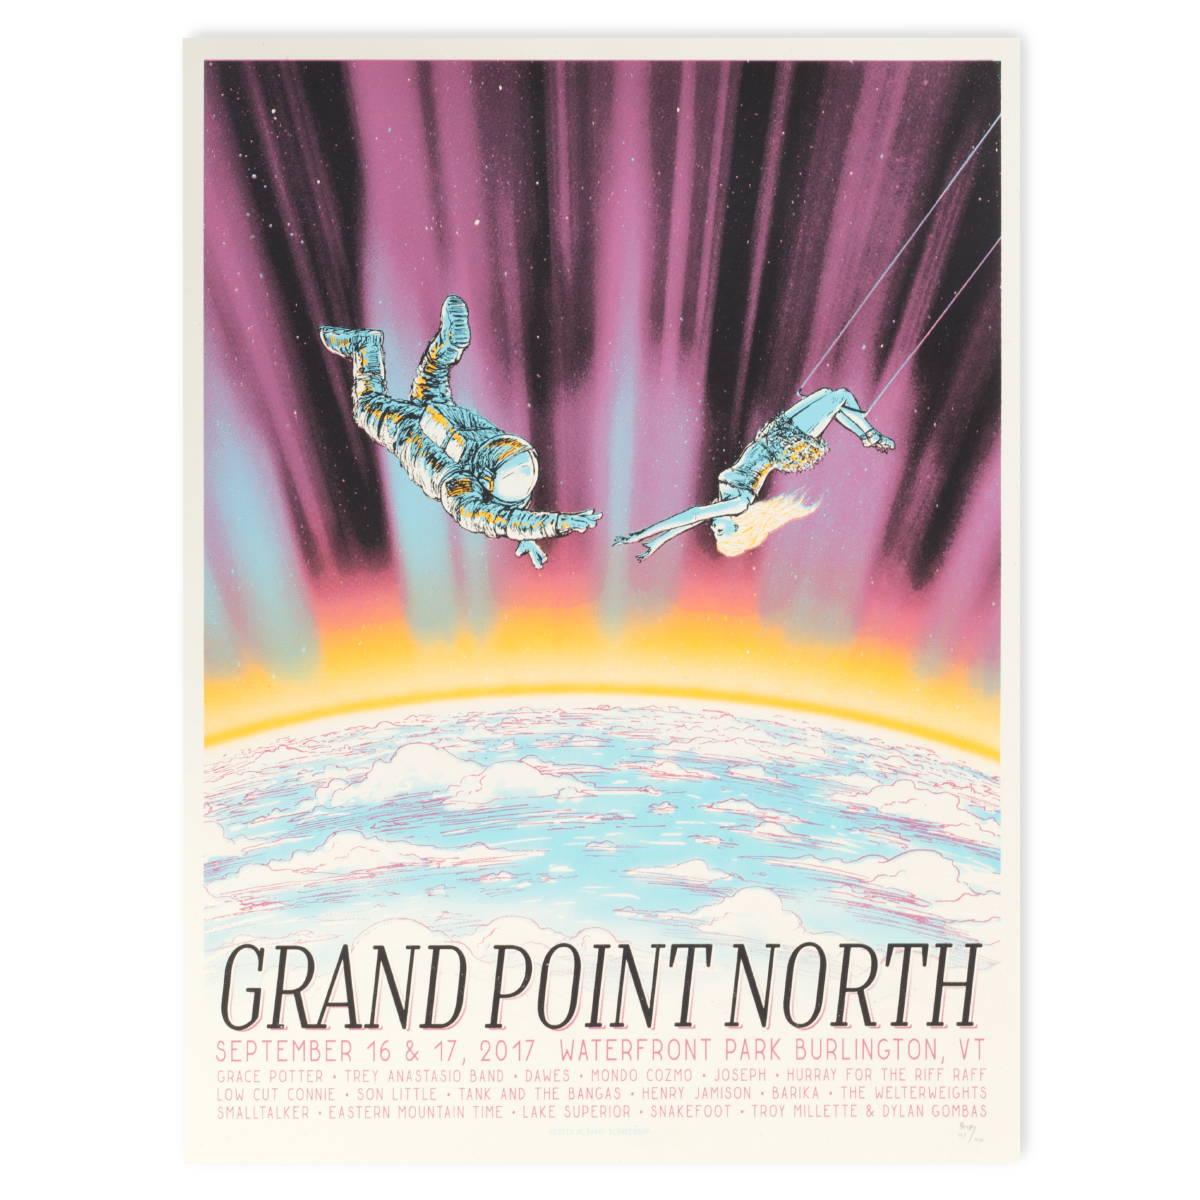 Grand Point North 2017 Poster